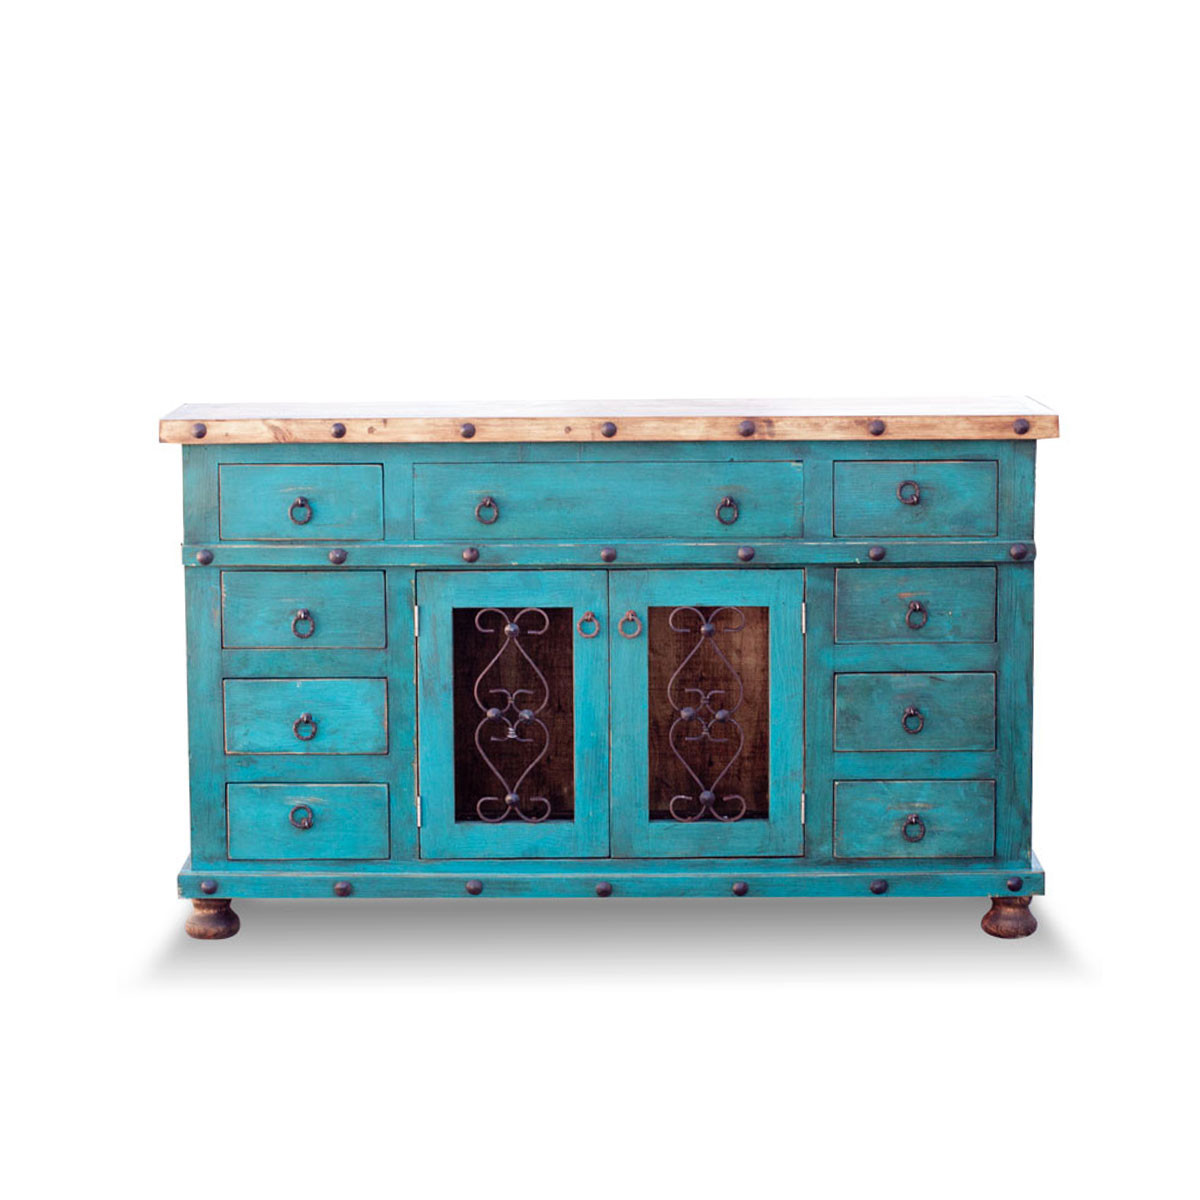 Order Hand Crafted Turquoise Rustic Vanity with Metal Banding Online